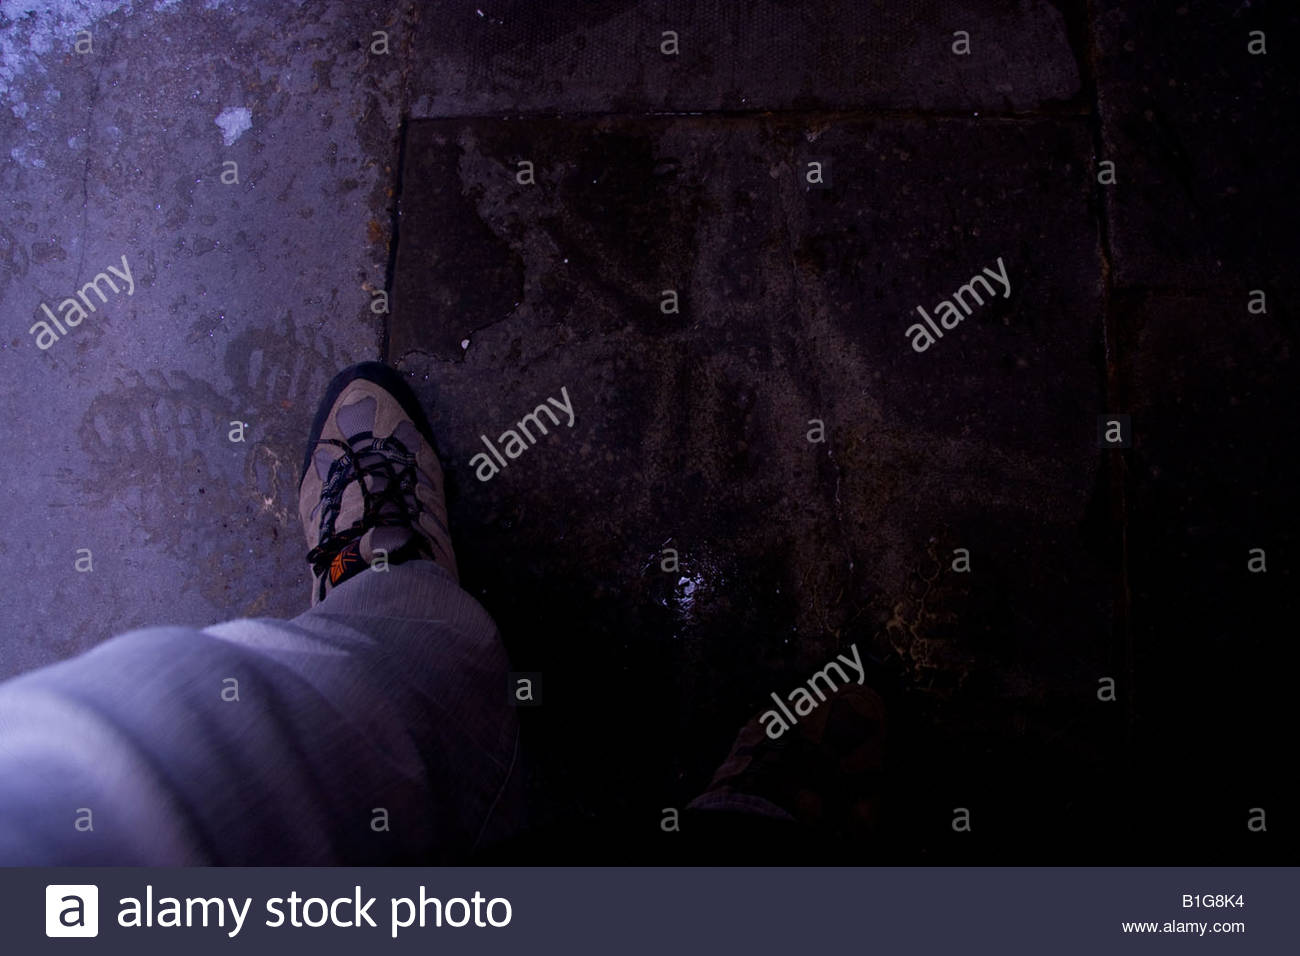 Foot emerging out of the darkness at night time, eerie and creepy, menacingly - Stock Image